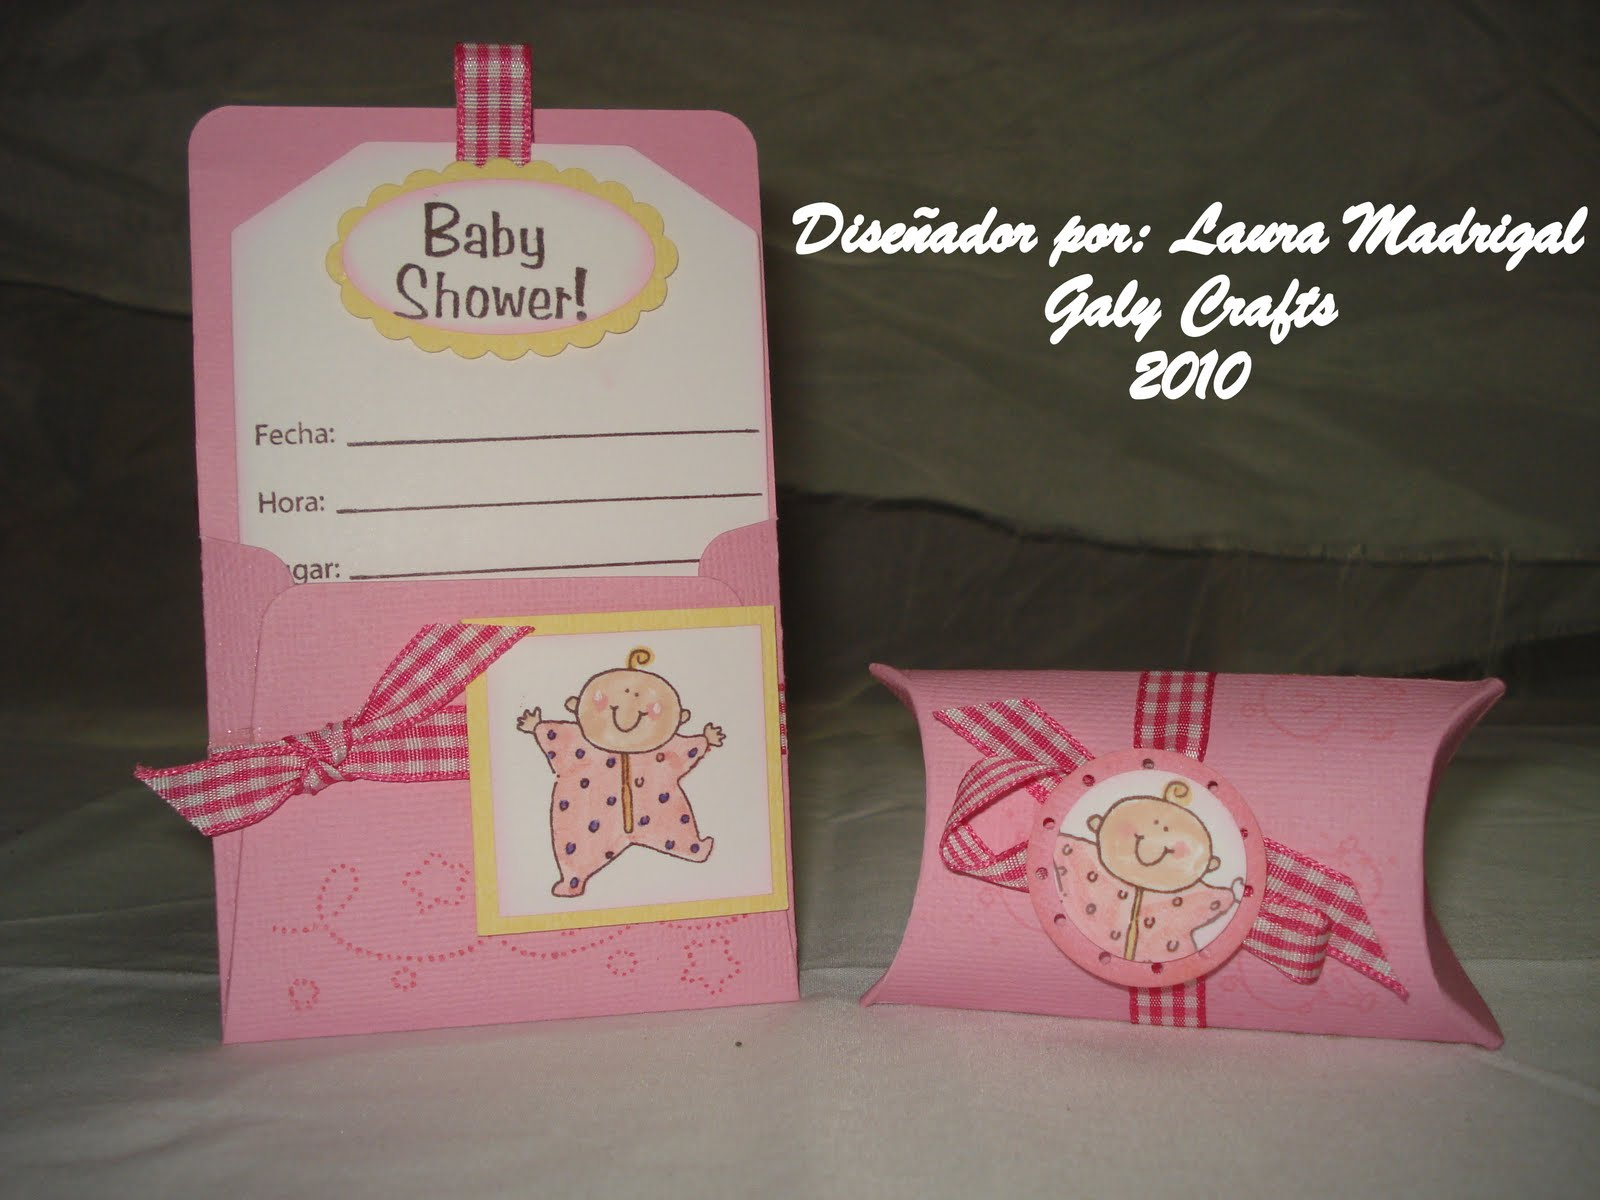 Tarjetas Boutique Galy Crafts Tarjetas De Baby Shower Para Nia 